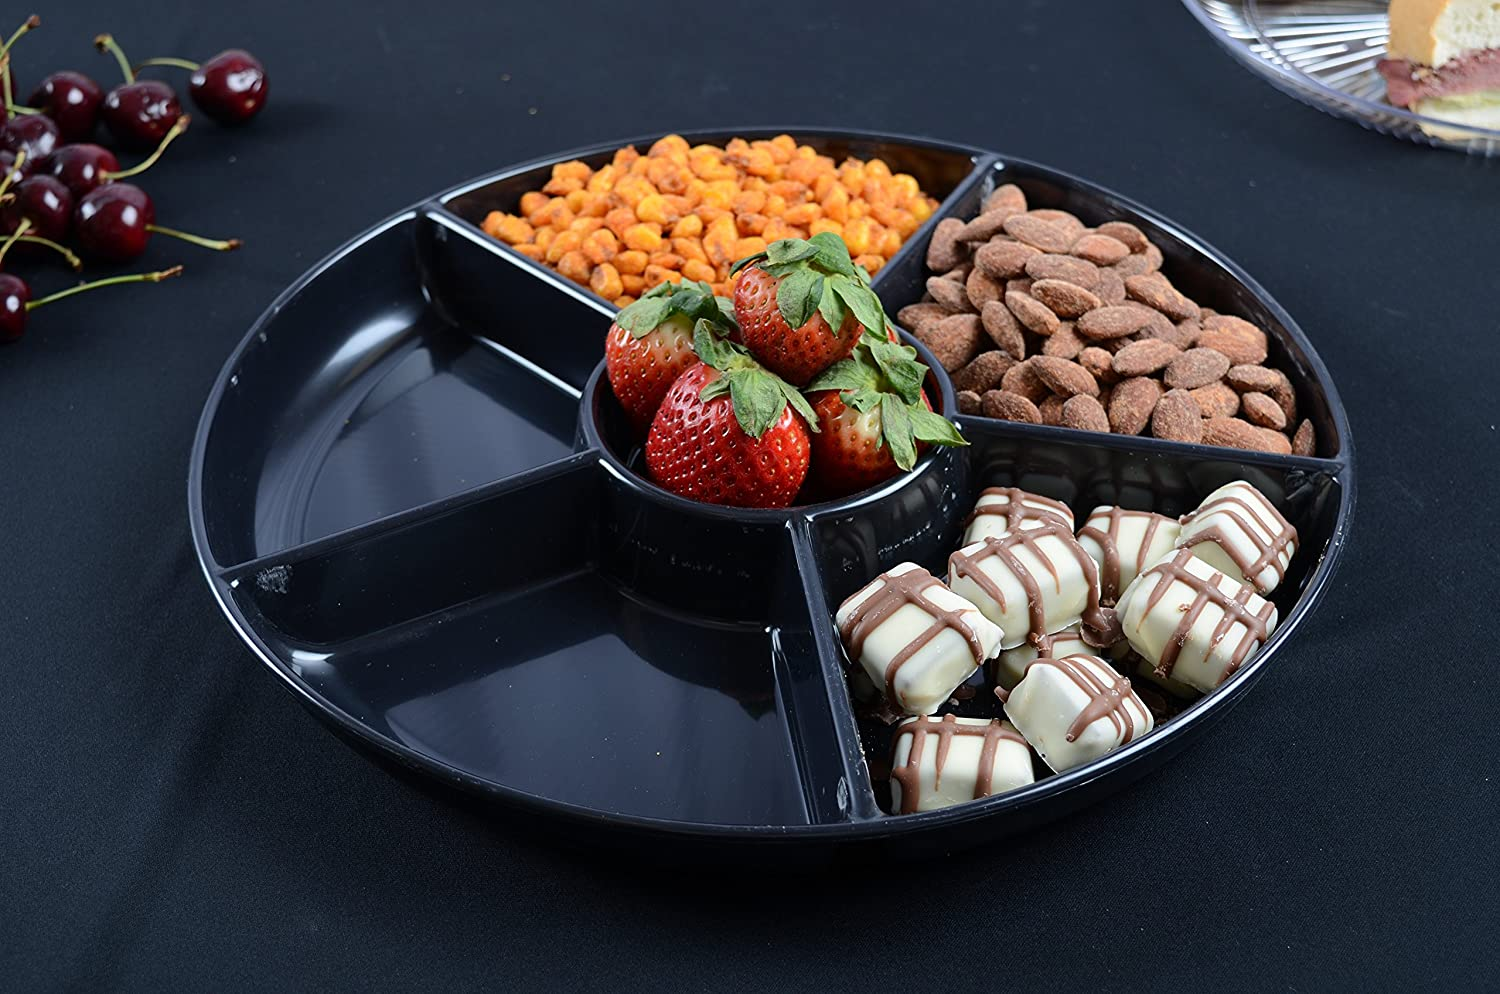 Platter Pleasers D13660.BK 6 Compartment Tray 13 Black